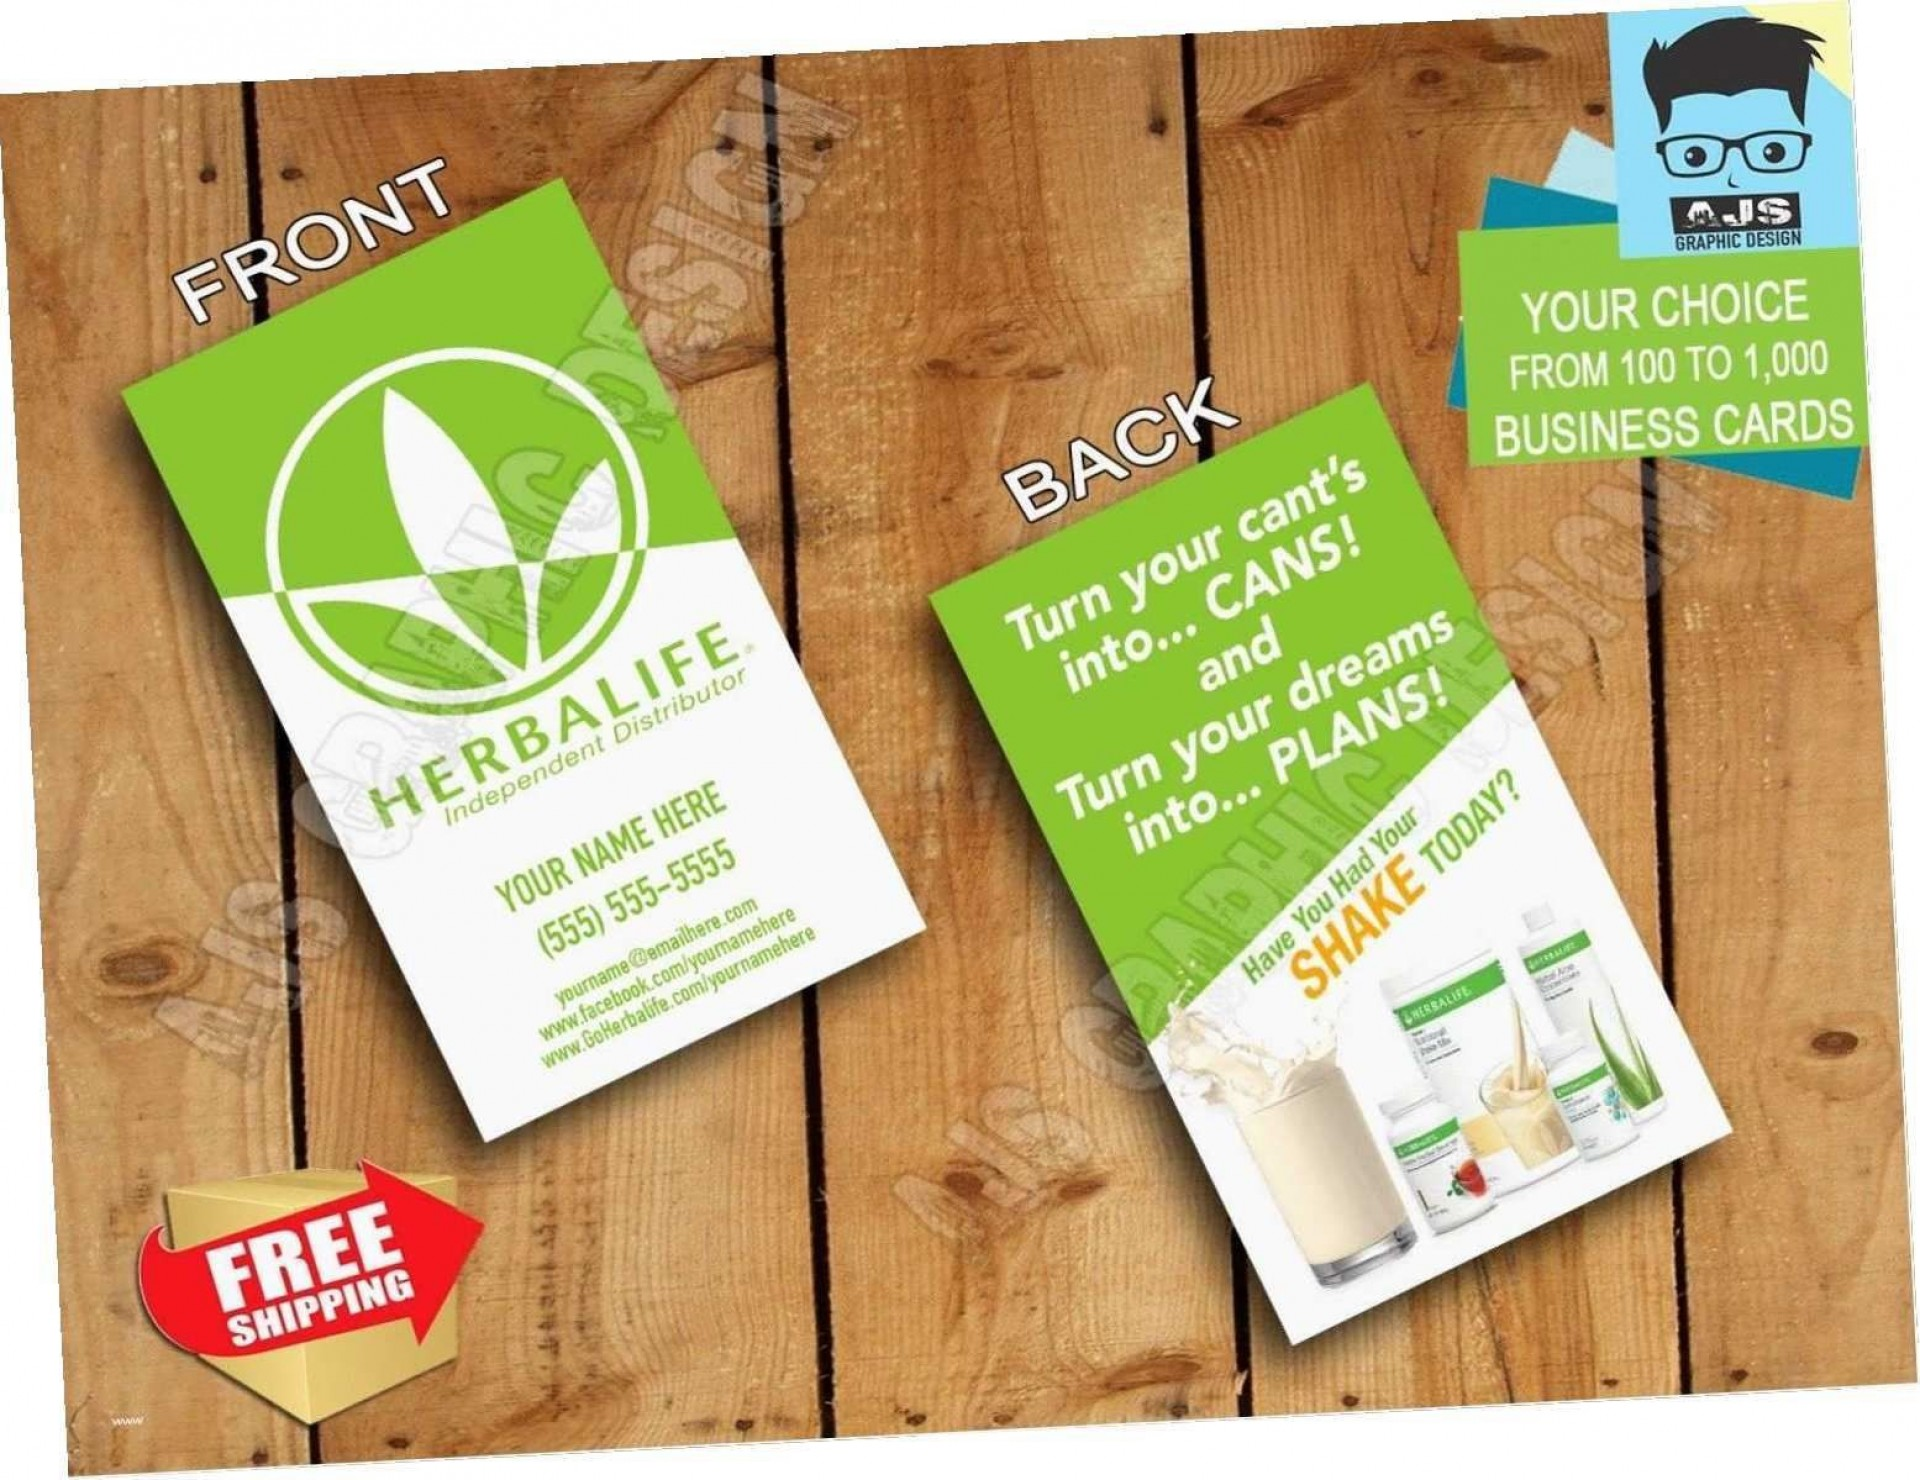 004 Magnificent Herbalife Busines Card Template Example  Download Free1920